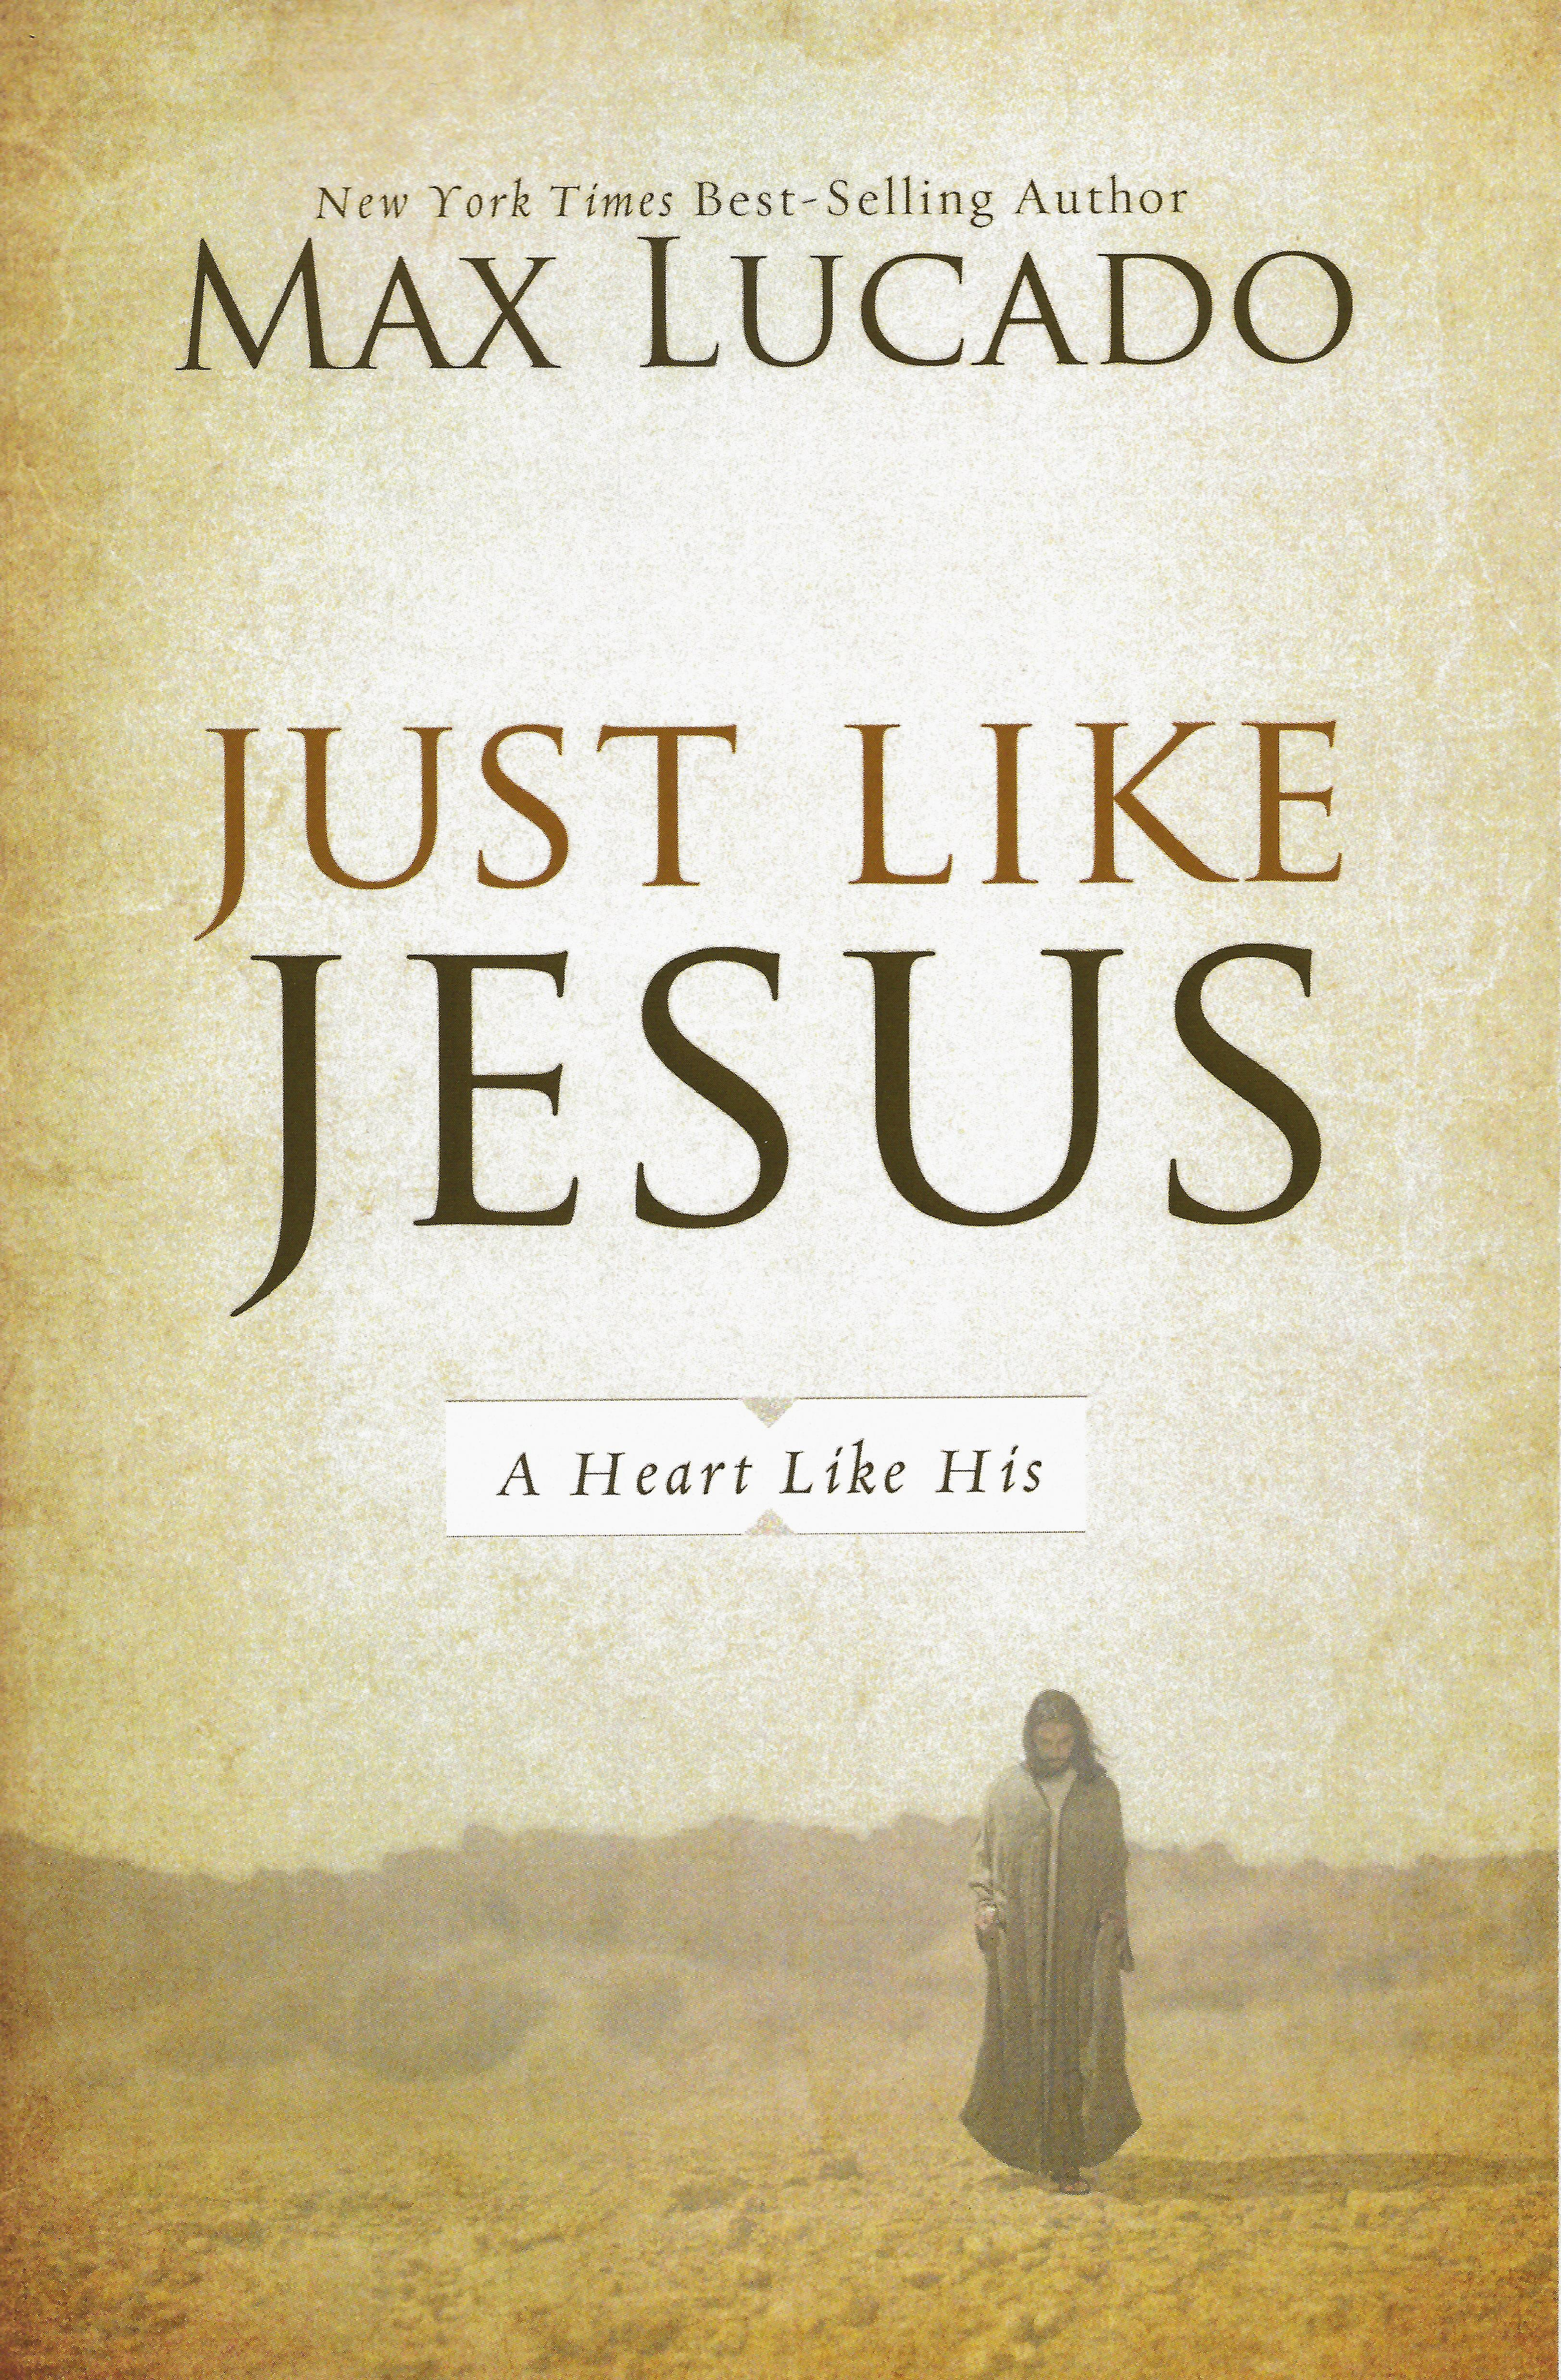 JUST LIKE JESUS Max Lucado